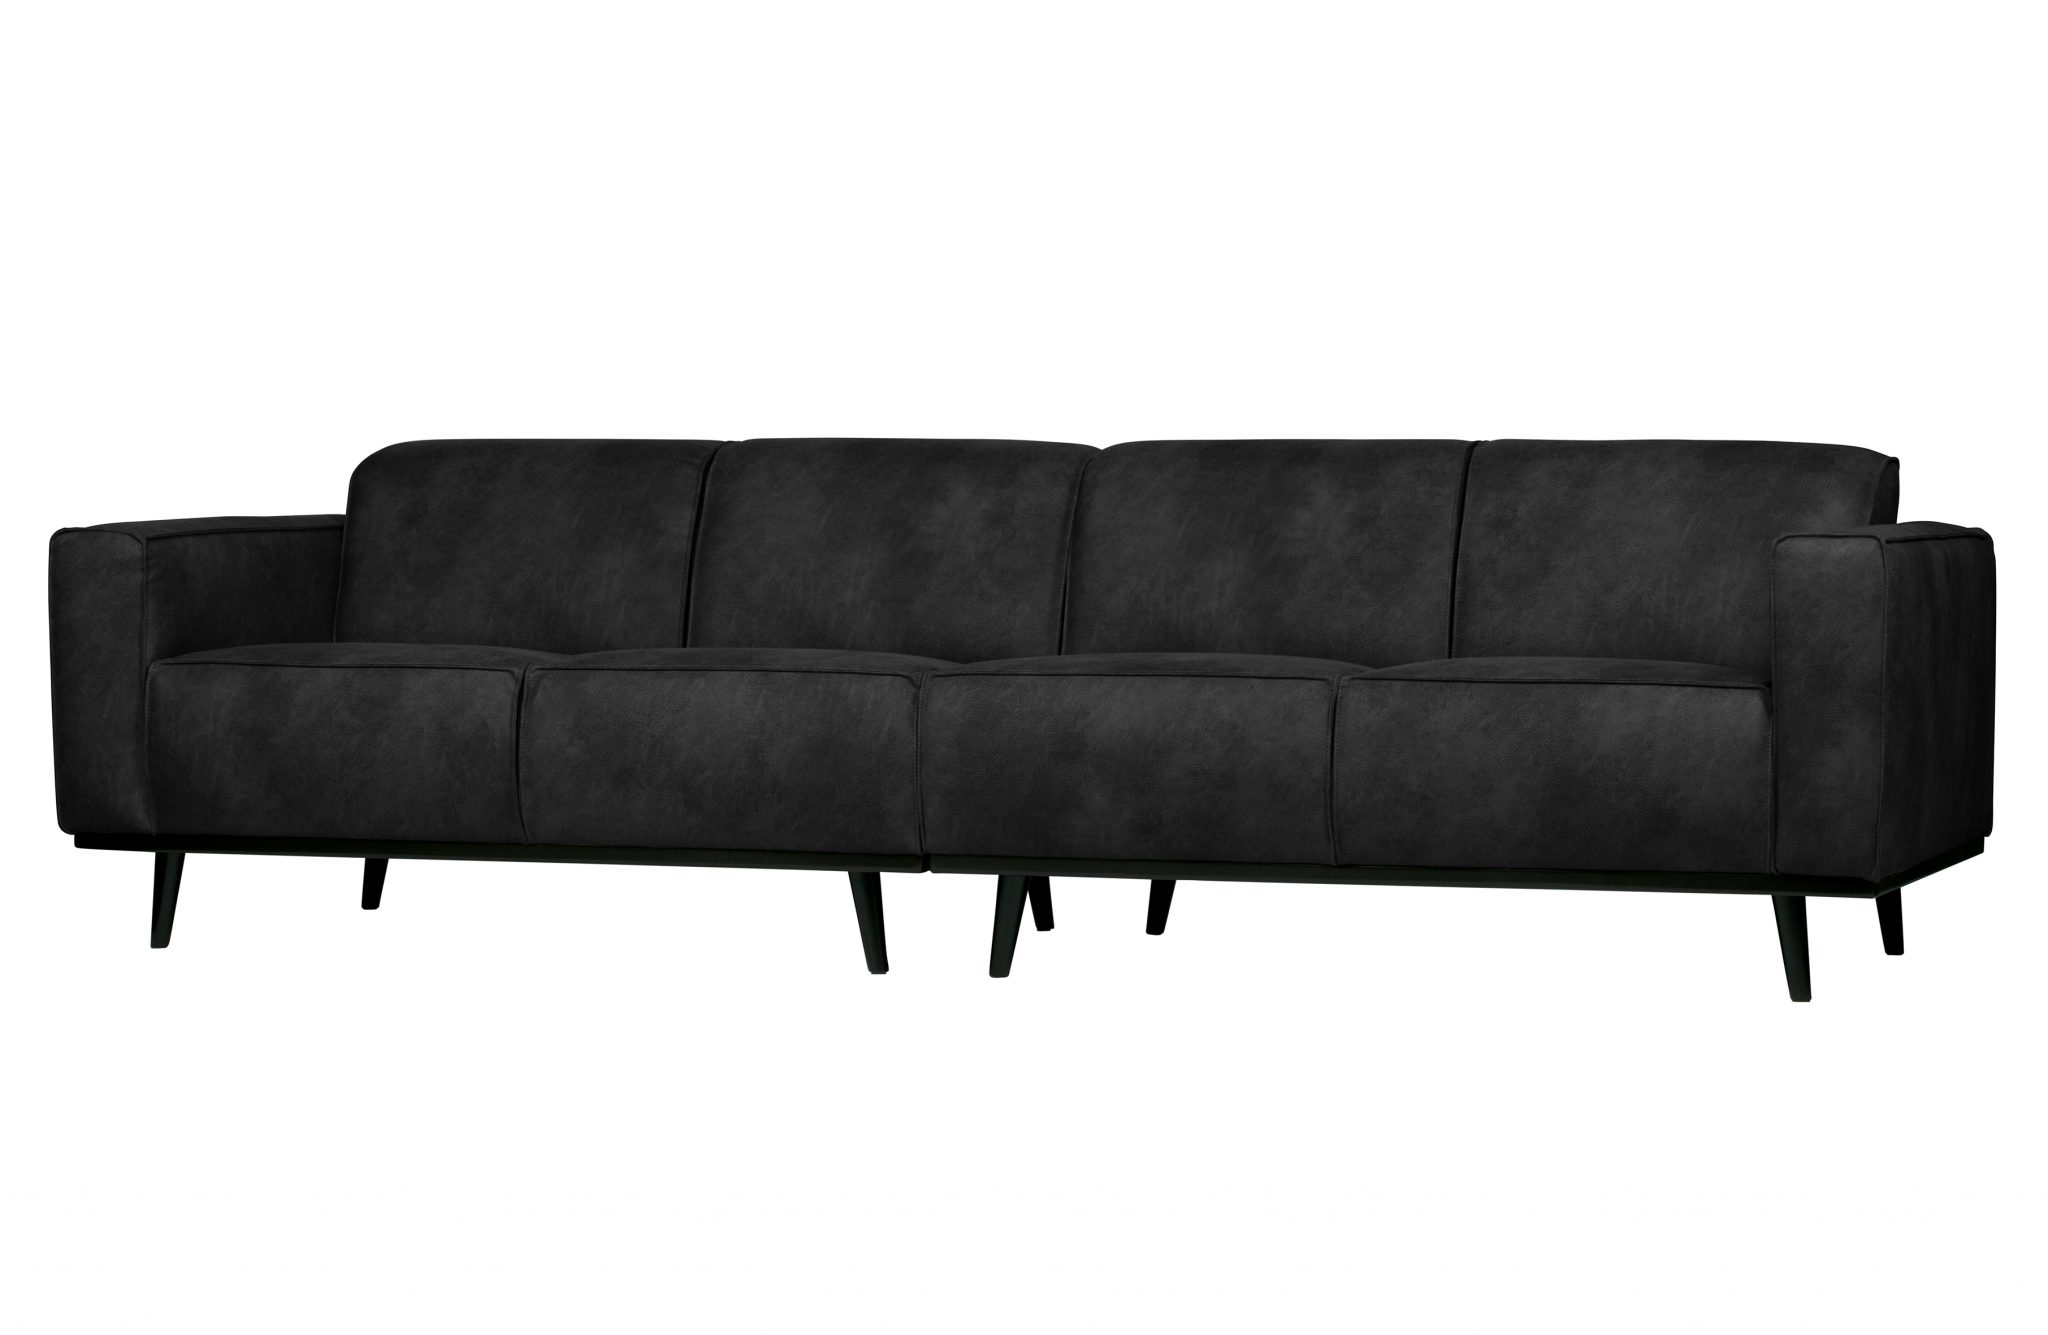 Statement 4 seter sofa , sort semsket skinn